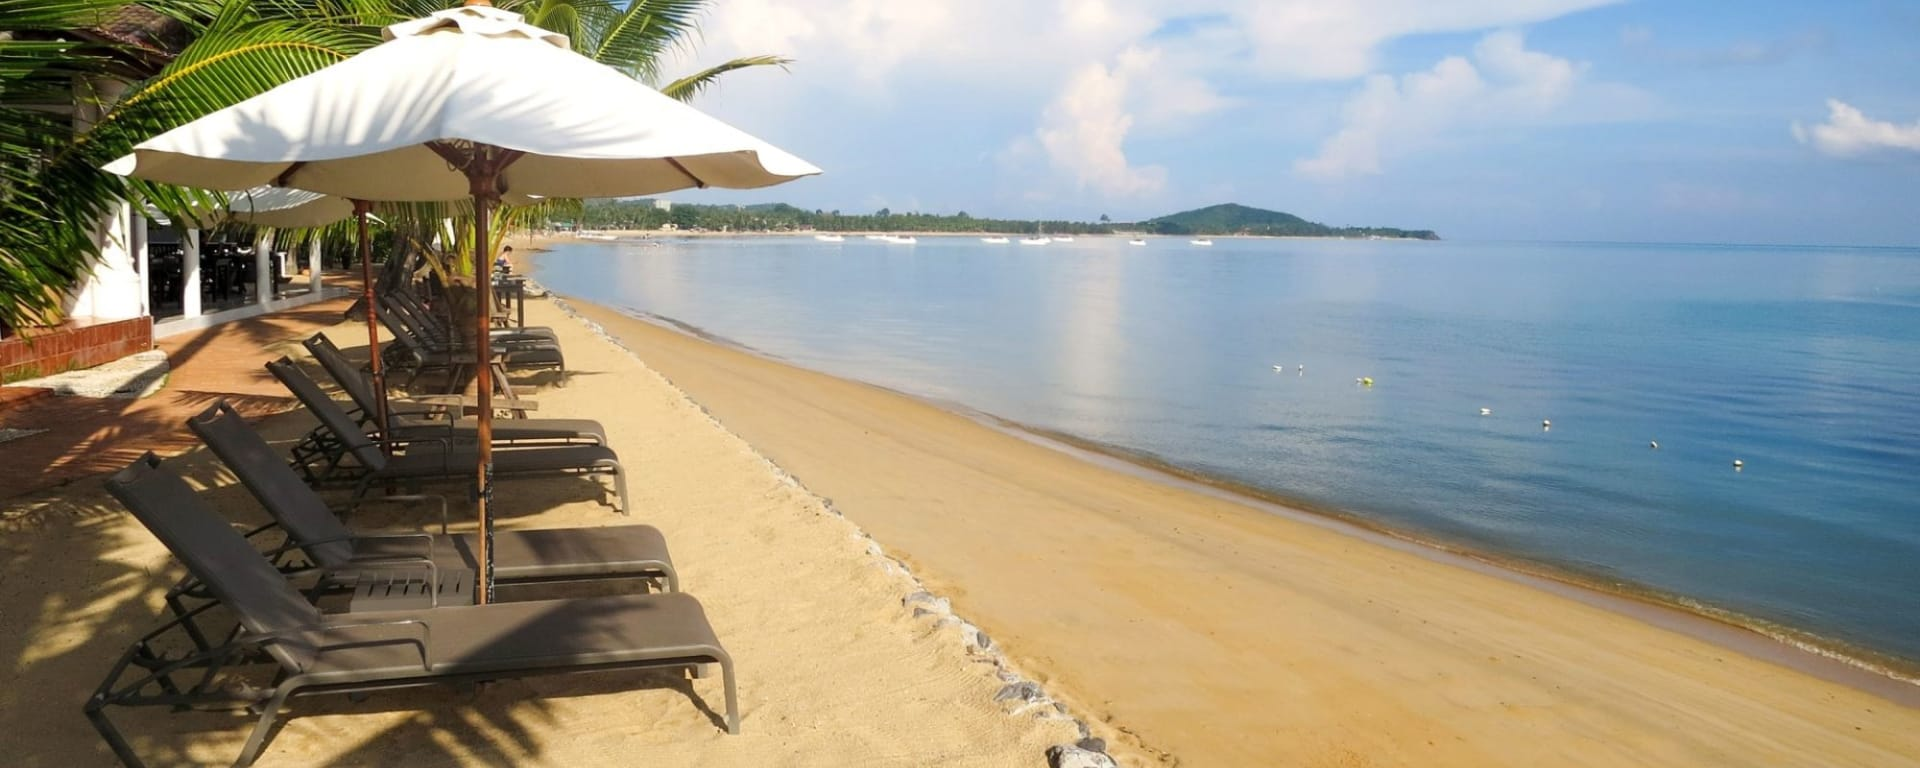 Paradise Beach Resort in Ko Samui: Beachfront